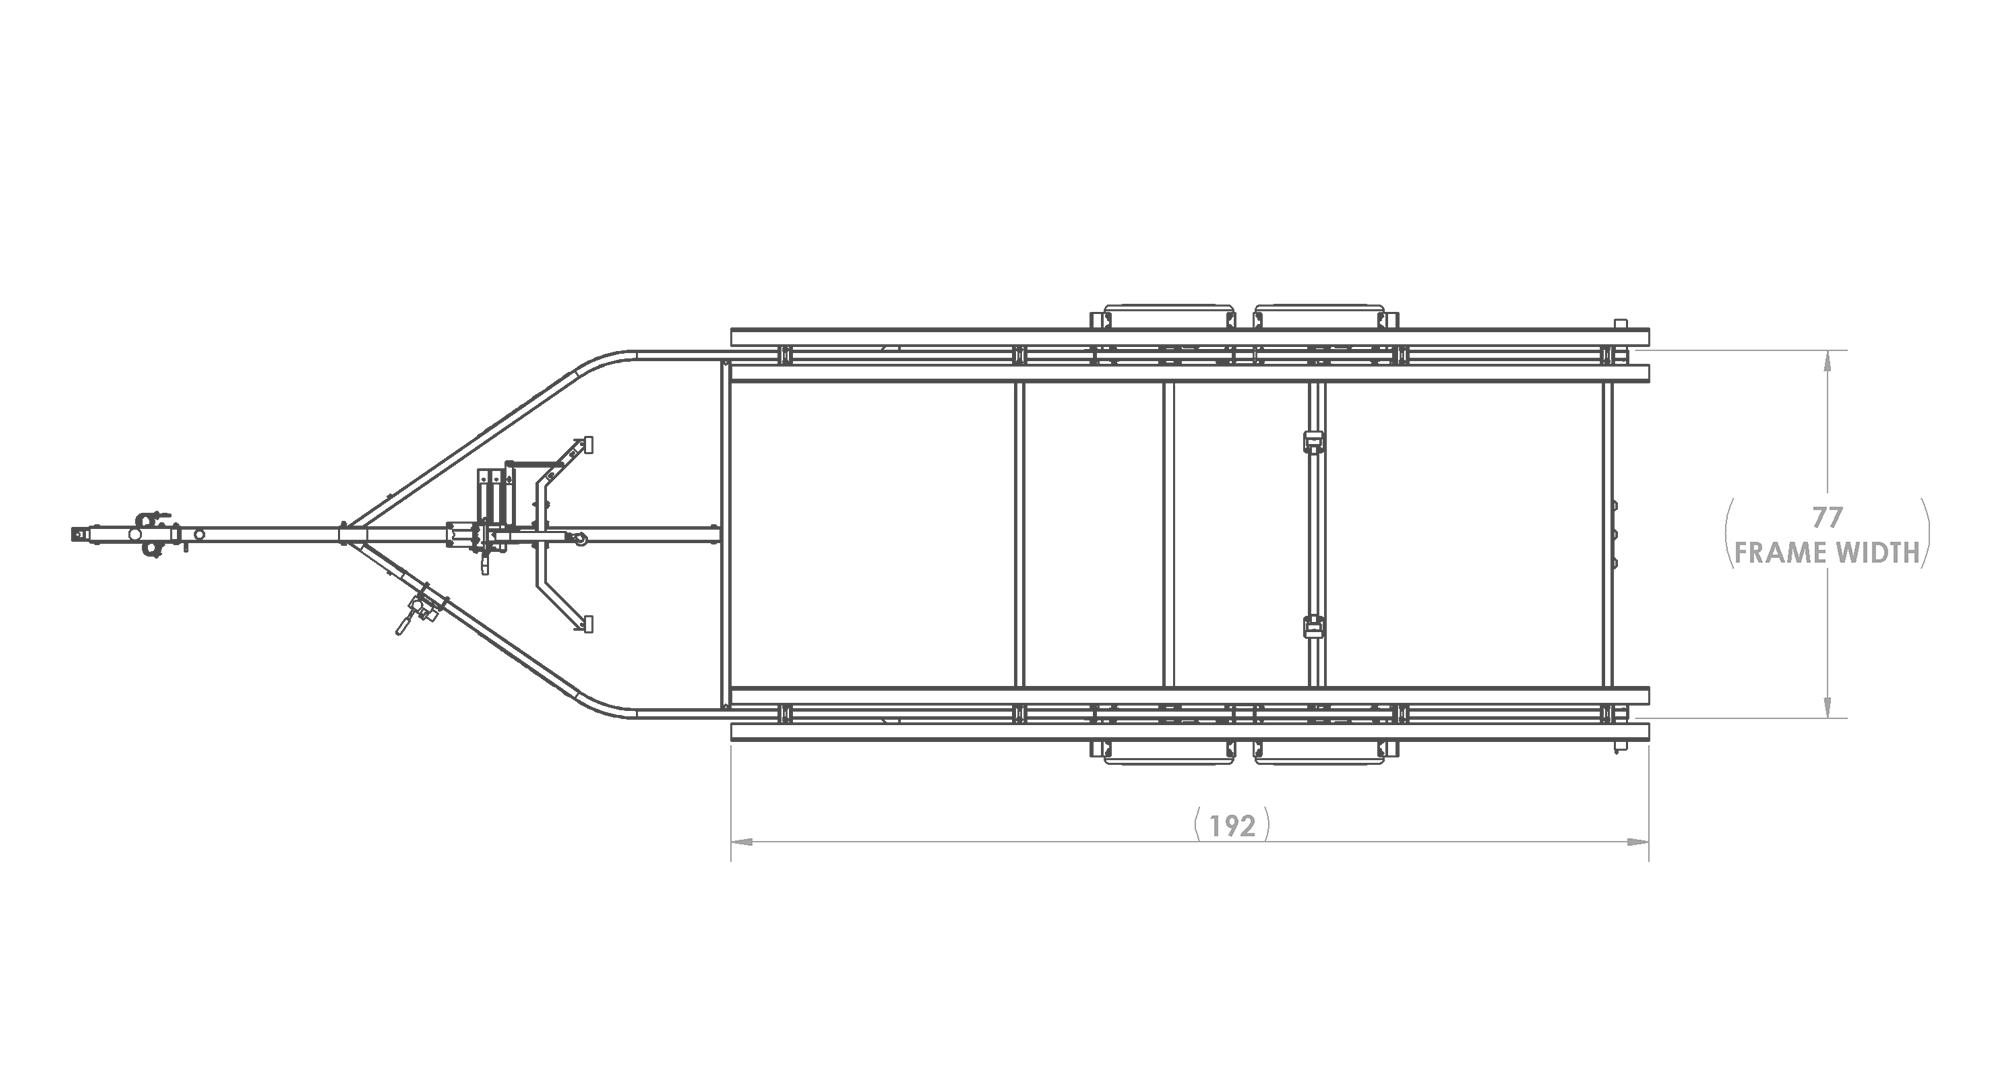 Karavan Trailer's Tandem Axel Midsize Pontoon Trailer, model number KDPT-1822, Top View Measurements